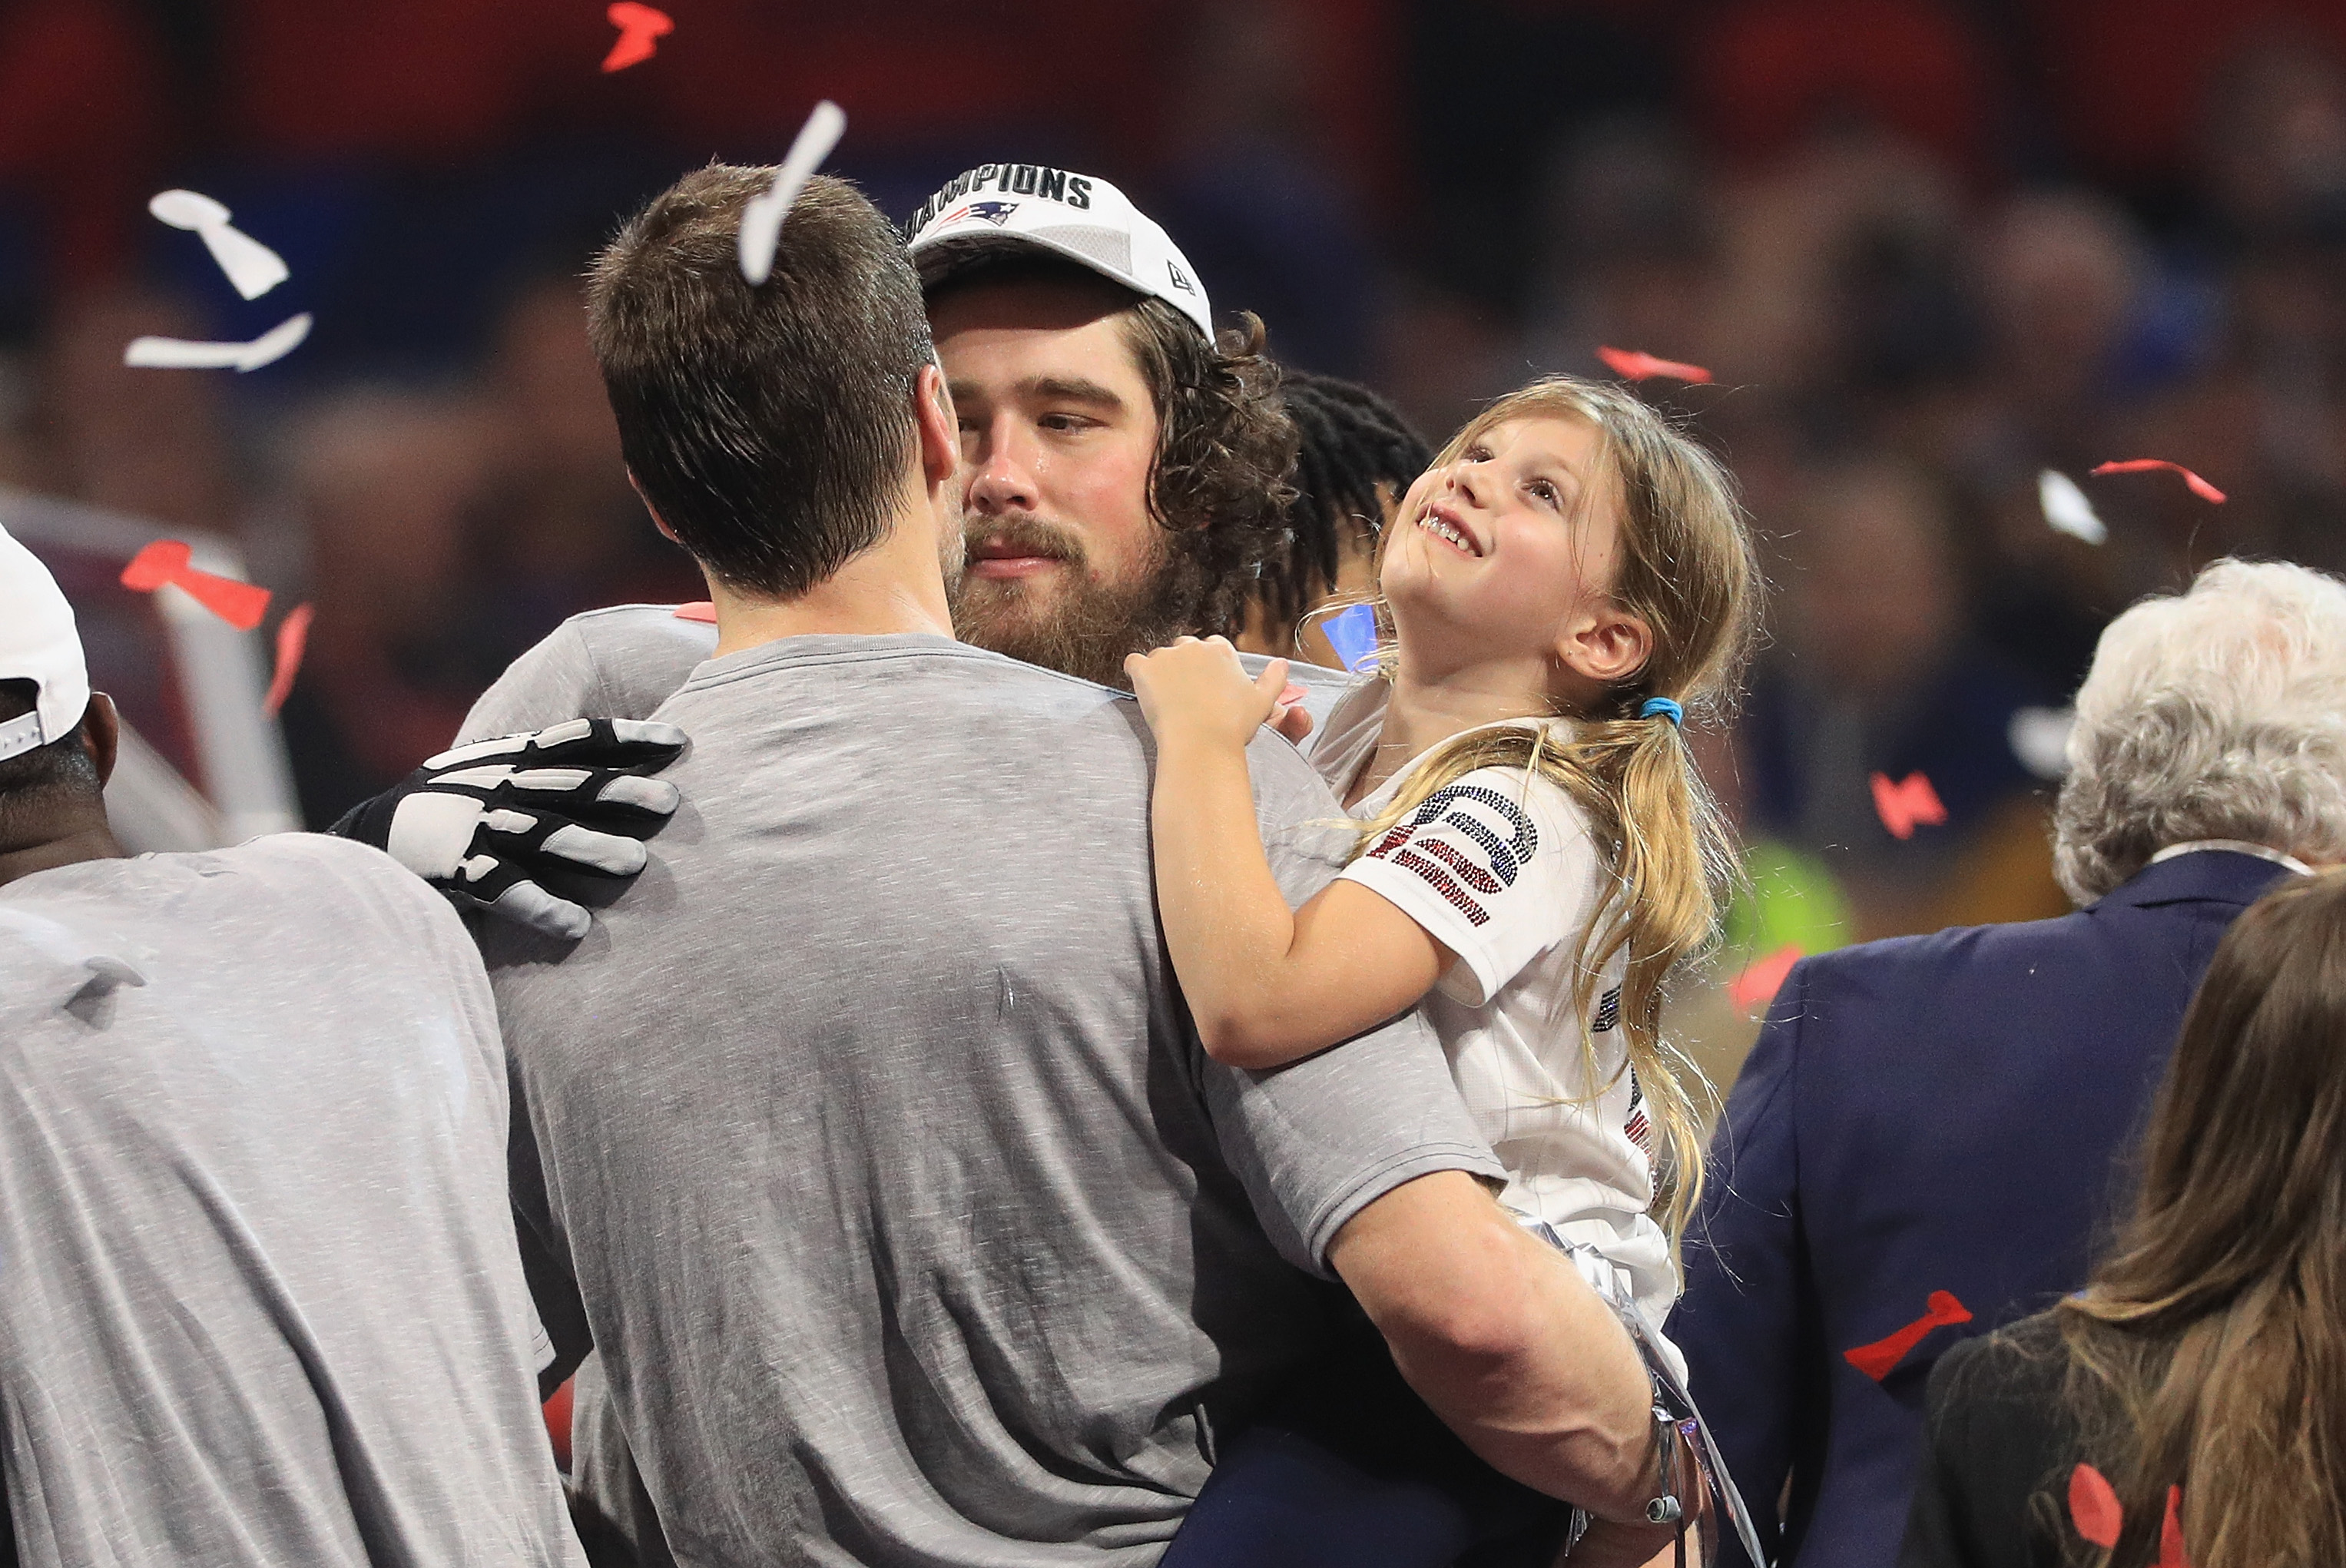 ATLANTA, GA - FEBRUARY 03: Vivian Brady, daughter of Tom Brady #12 of the New England Patriots, watches confetti fall after the Patriots defeat the Los Angeles Rams 13-3 during Super Bowl LIII at Mercedes-Benz Stadium on February 3, 2019 in Atlanta, Georgia.  (Photo by Mike Ehrmann/Getty Images)